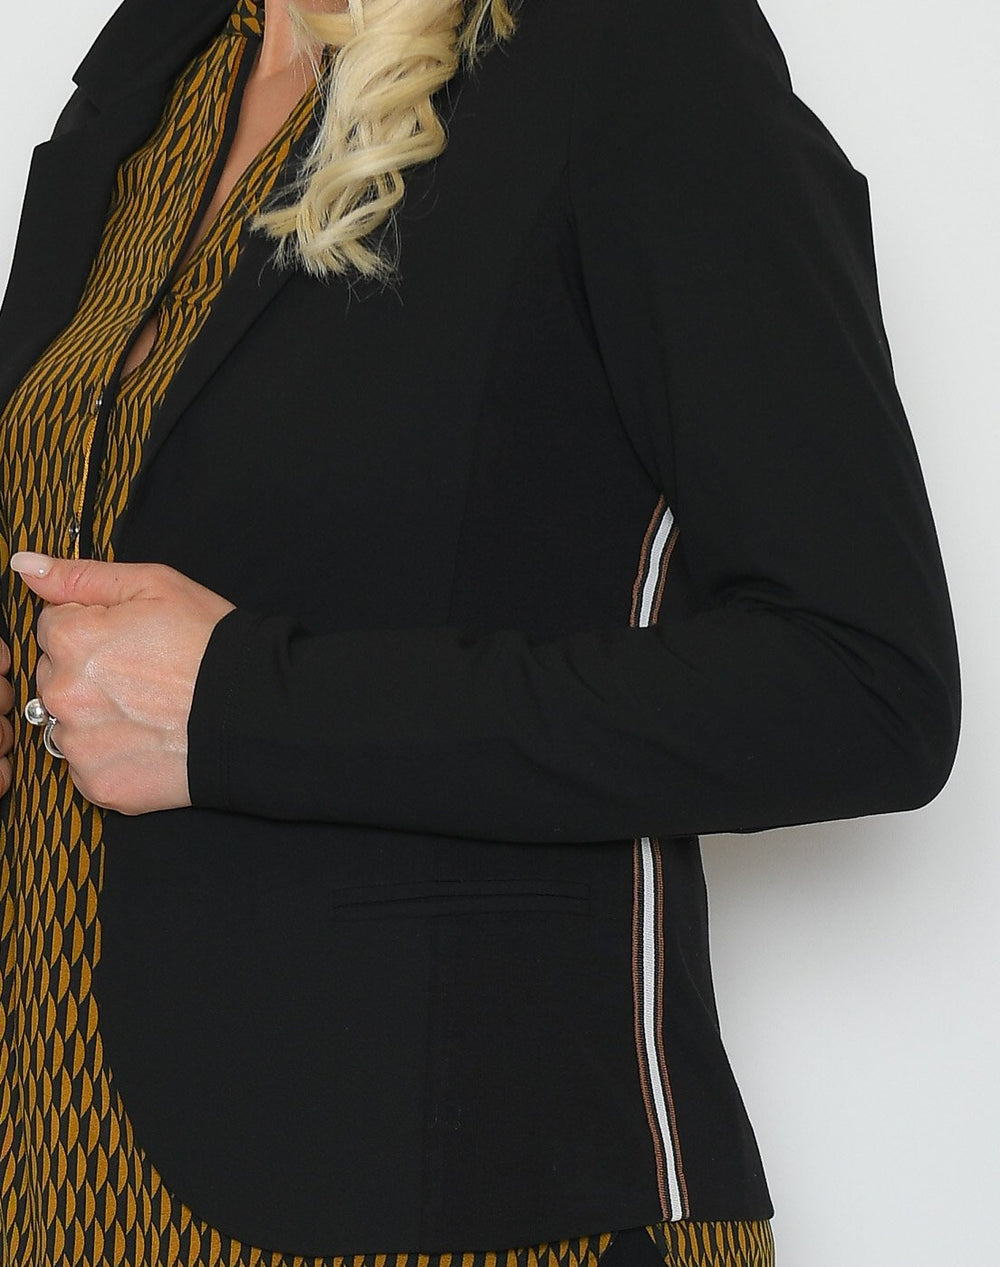 Kaffe KApila Jillian blazer black deep - Online-Mode